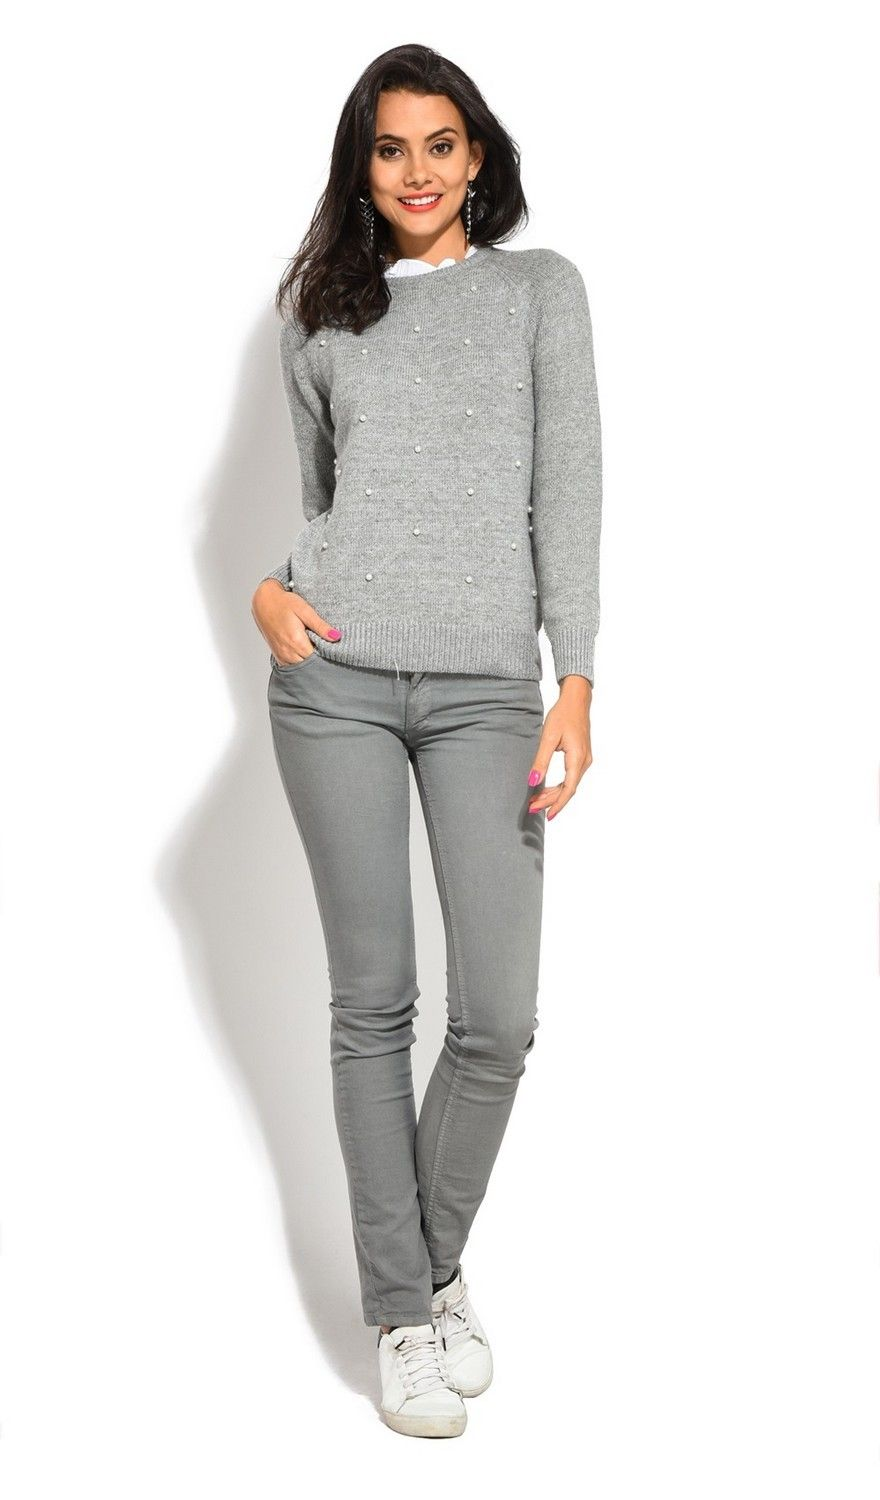 Assuili Ruffle Neck Long Sleeve Ribbed Sweater in Grey